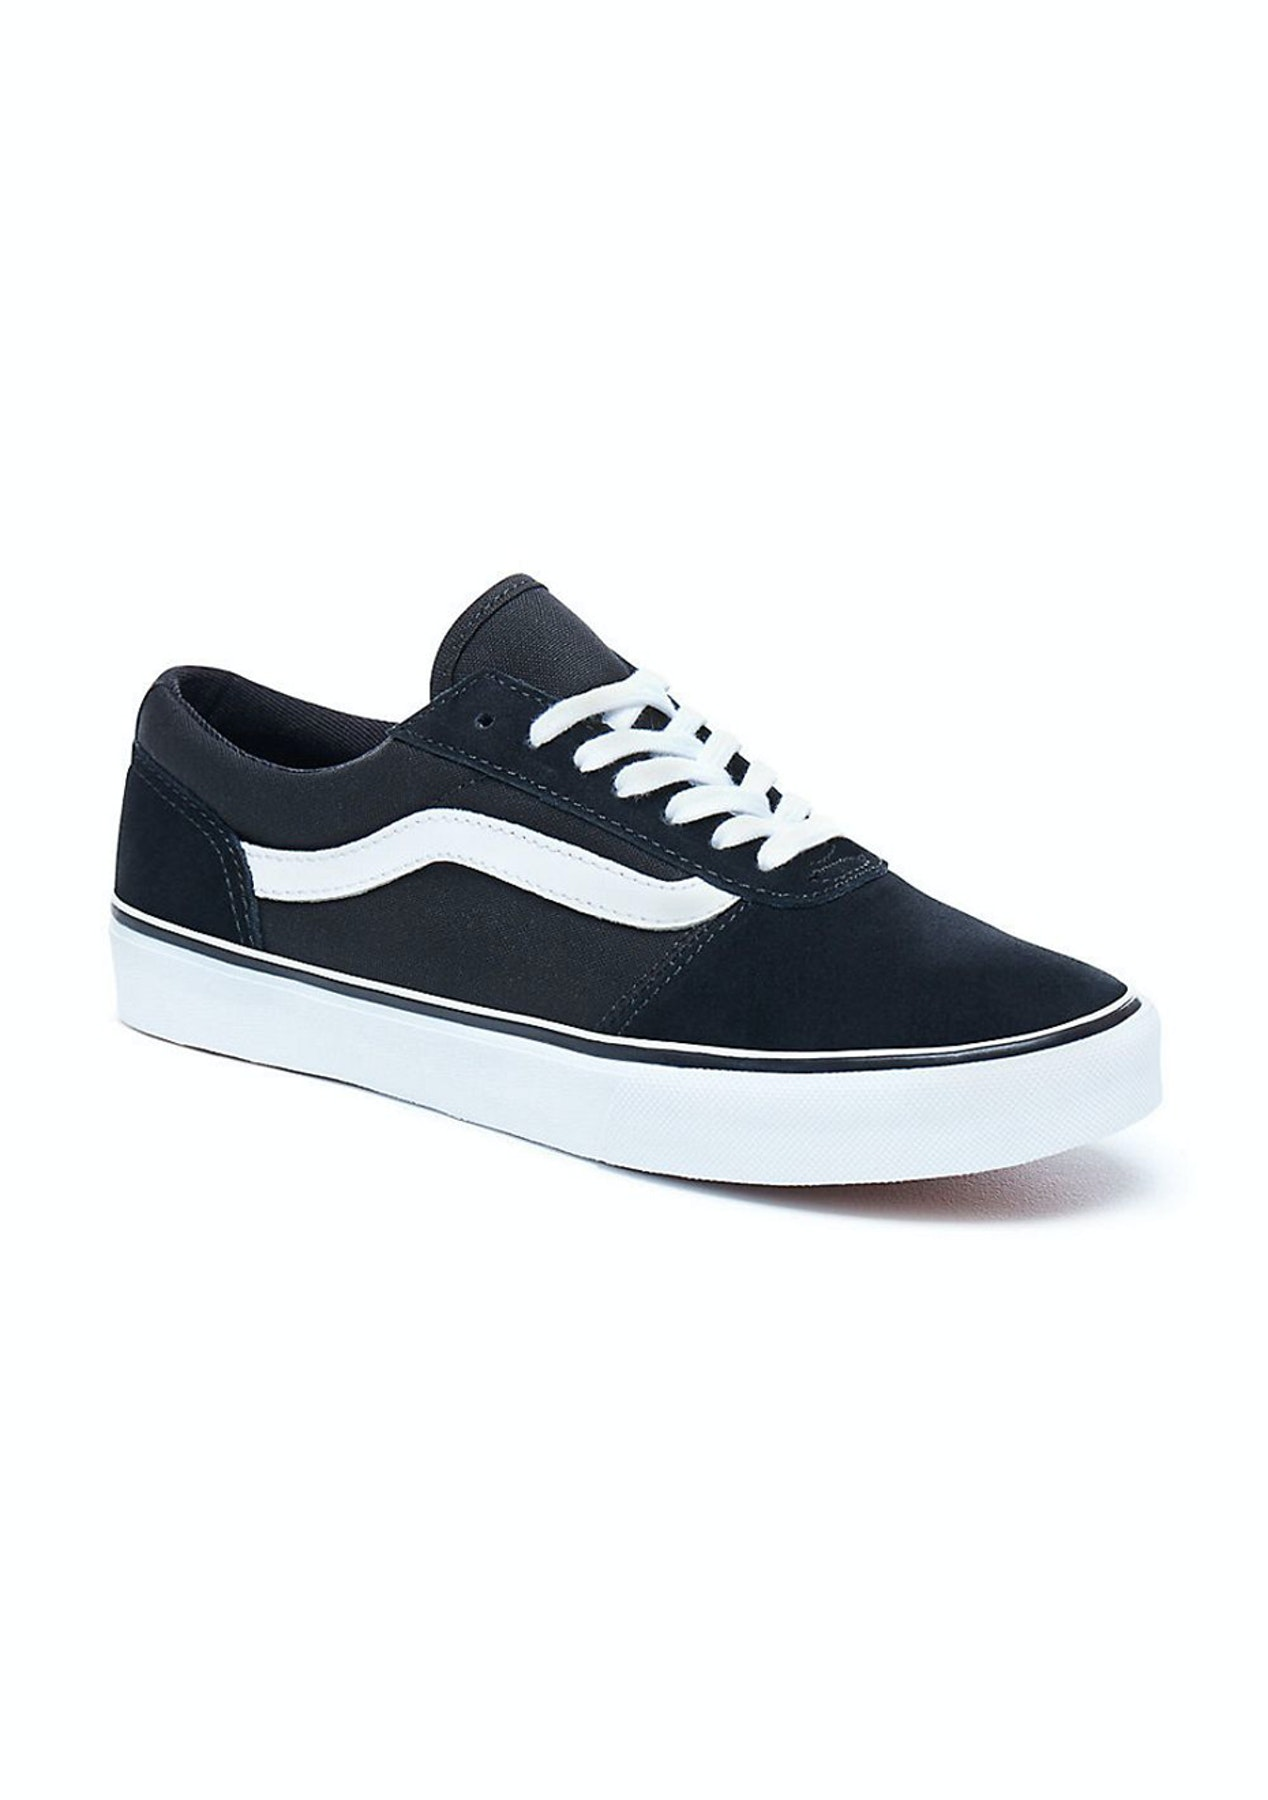 5c8a54626344 Vans - Womens Maddie - Canvas - Black White - Vans for The Family - Onceit